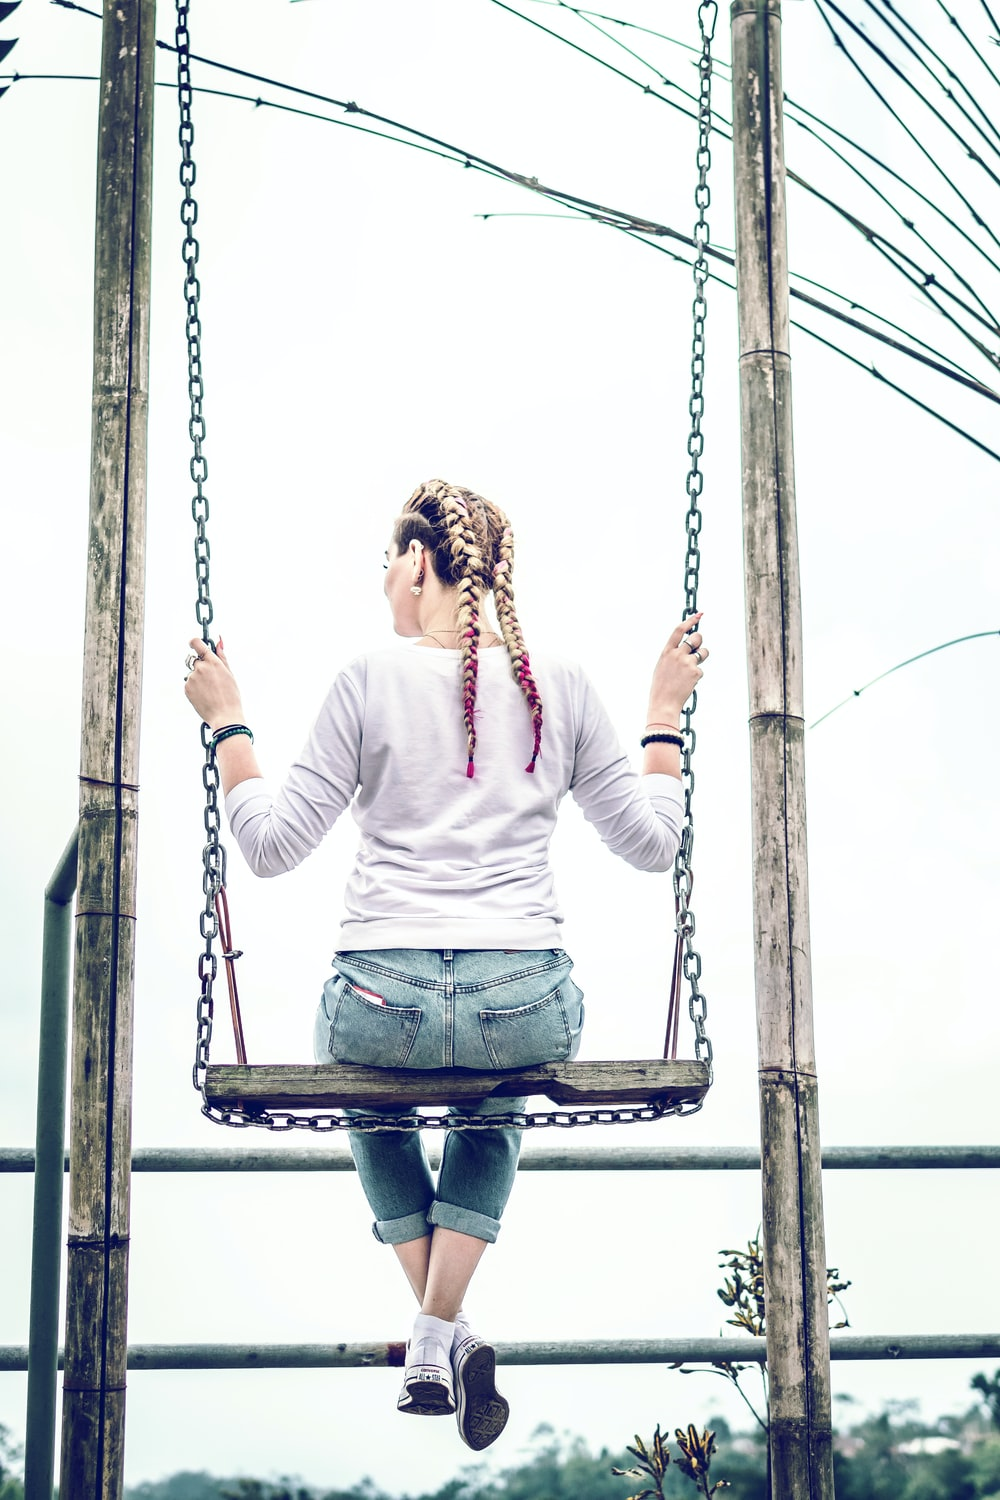 woman siting on swing